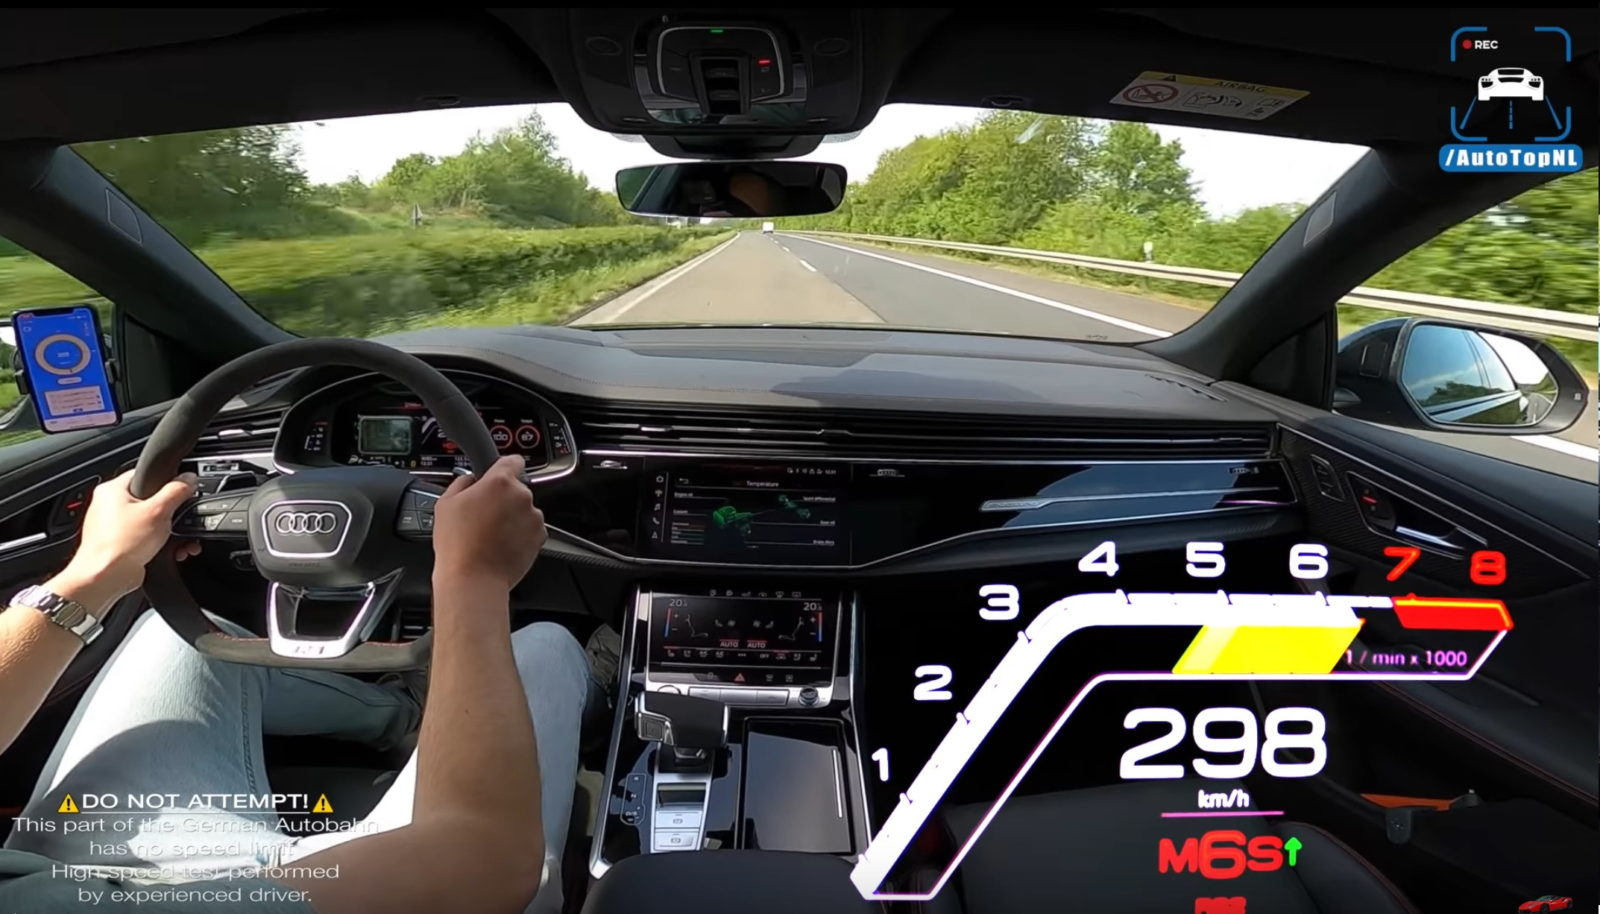 audi-rs-q8-leads-driver-into-temptation,-hits-186-mph-on-public-highway